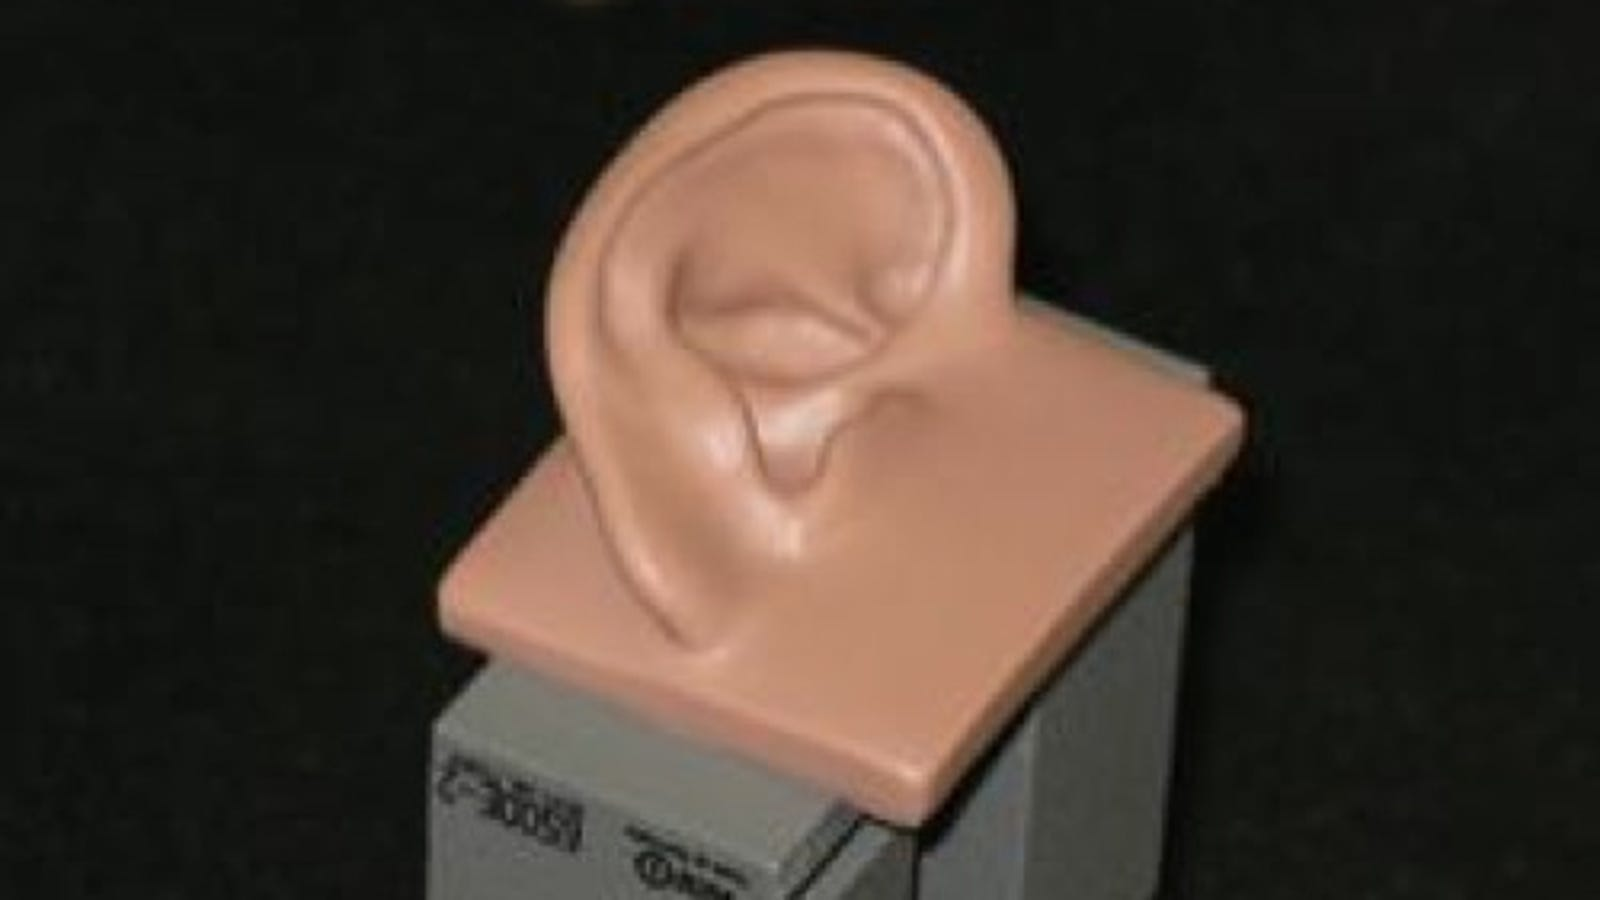 noise cancelling earbuds cover